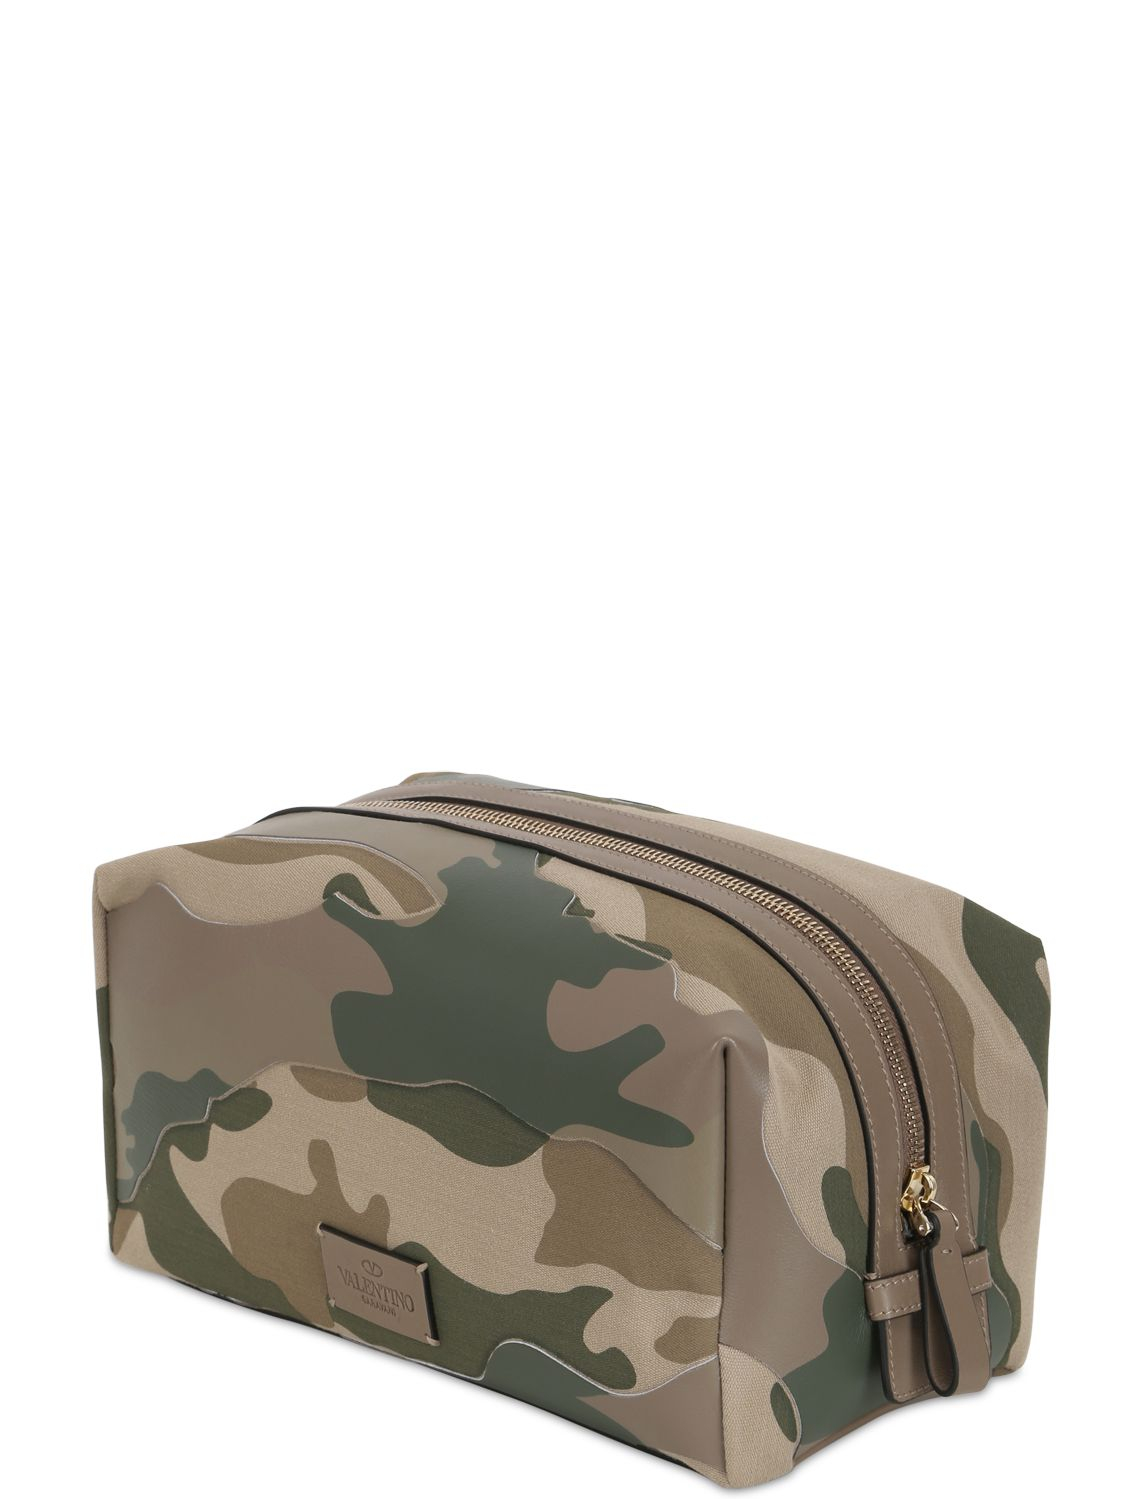 valentino camouflage nylon leather toiletry bag in green for men